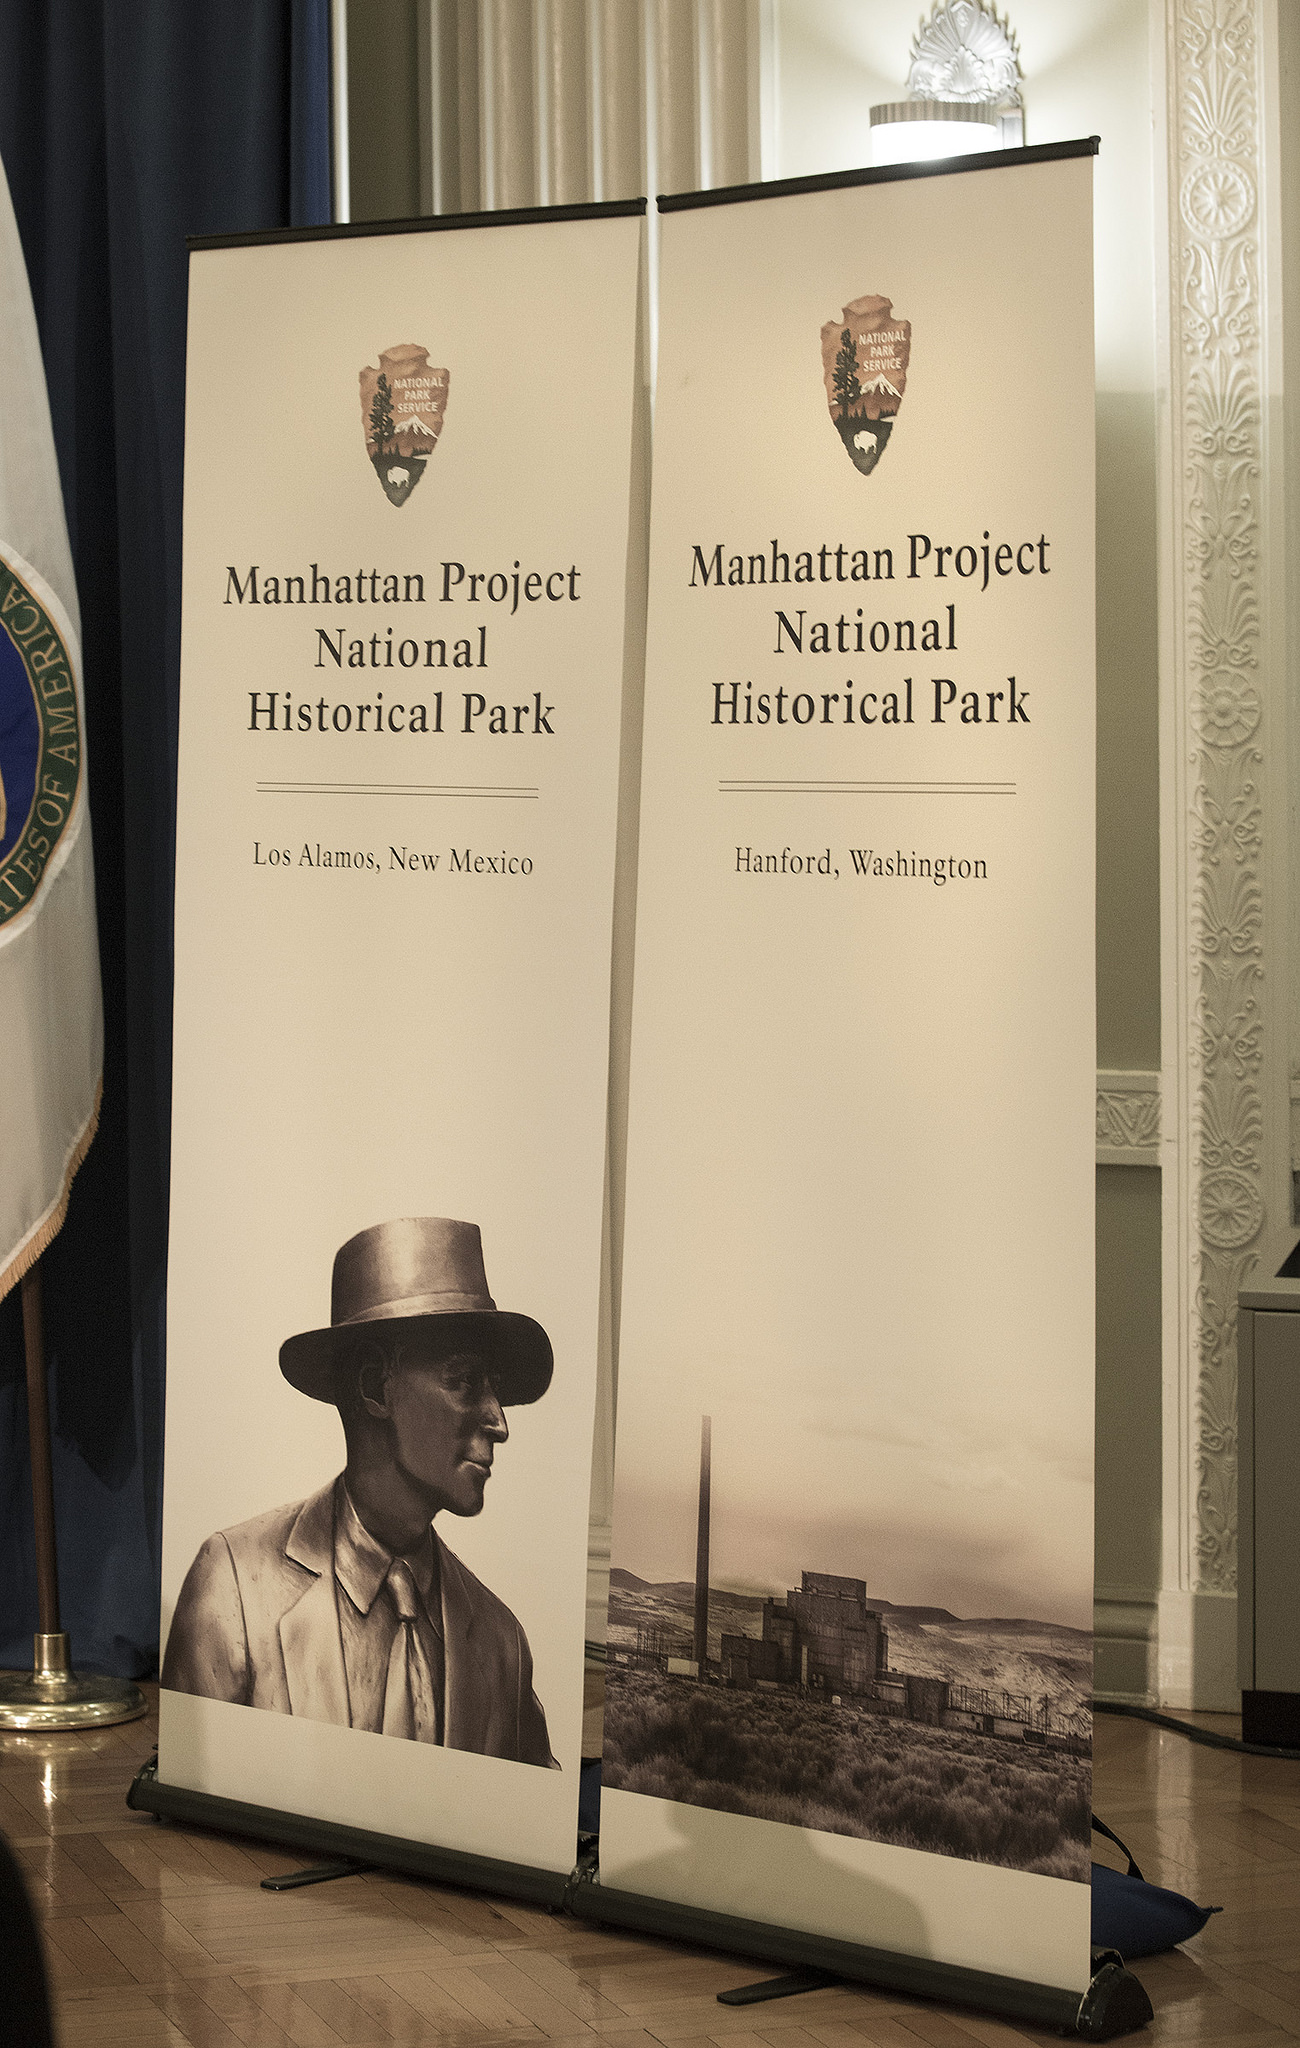 From South Interior Building in Washington, D.C., on November 10, 2015, where Secretary of the Interior Sally Jewell and Energy Secretary Ernest Moniz signed a memorandum of agreement which created the the Manhattan Project National Historical Park.